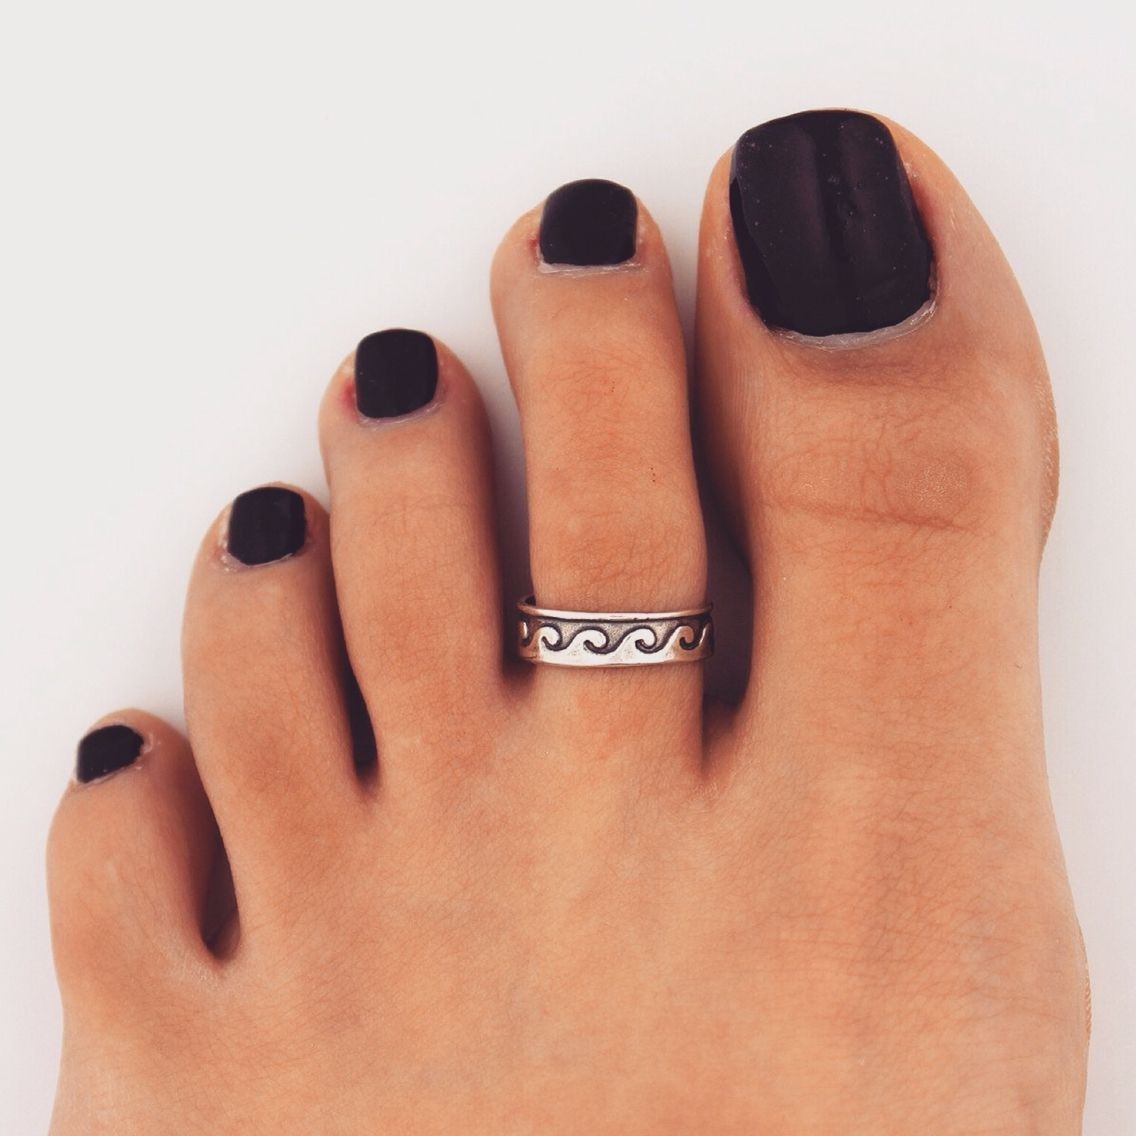 Black Toe Polish W/ Toe Ring | Shoes | Pinterest | Black Toe, Toe Pertaining To Most Popular Custom Toe Rings (View 3 of 15)